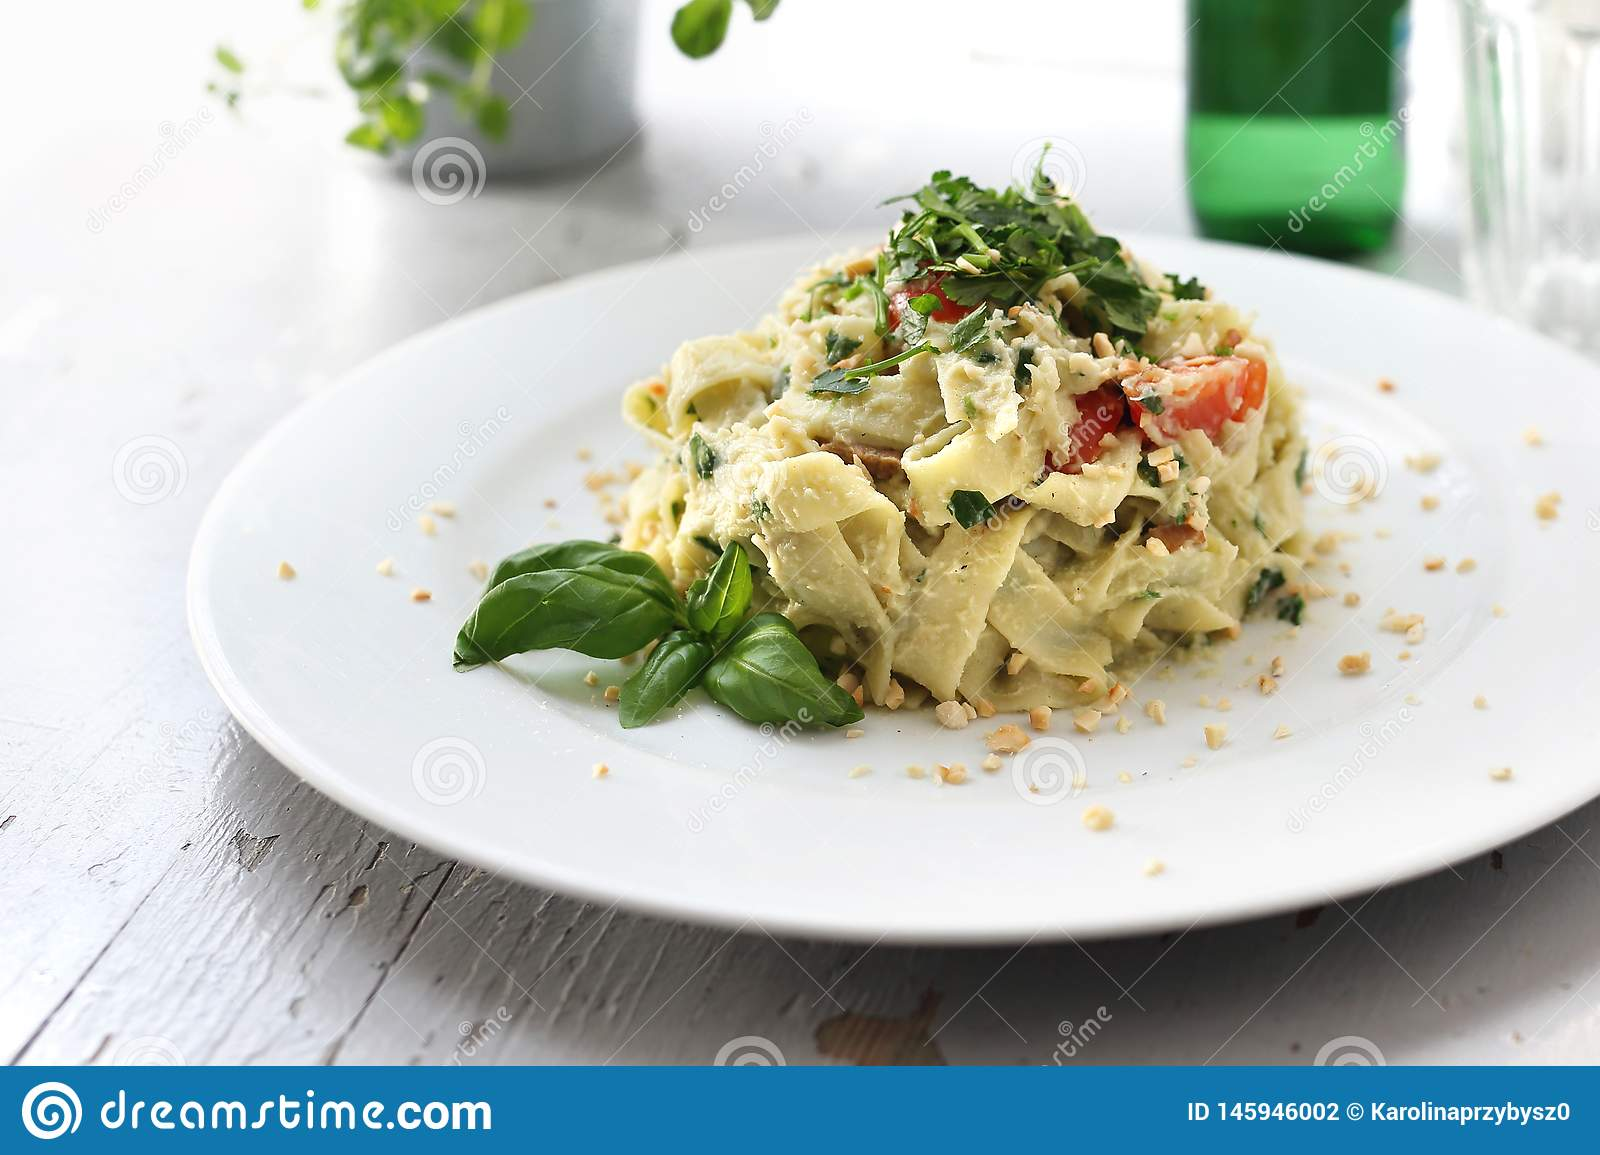 Vegetarian cooking. Pappardelle pasta with cauliflower and spinach. Dish on a white plate